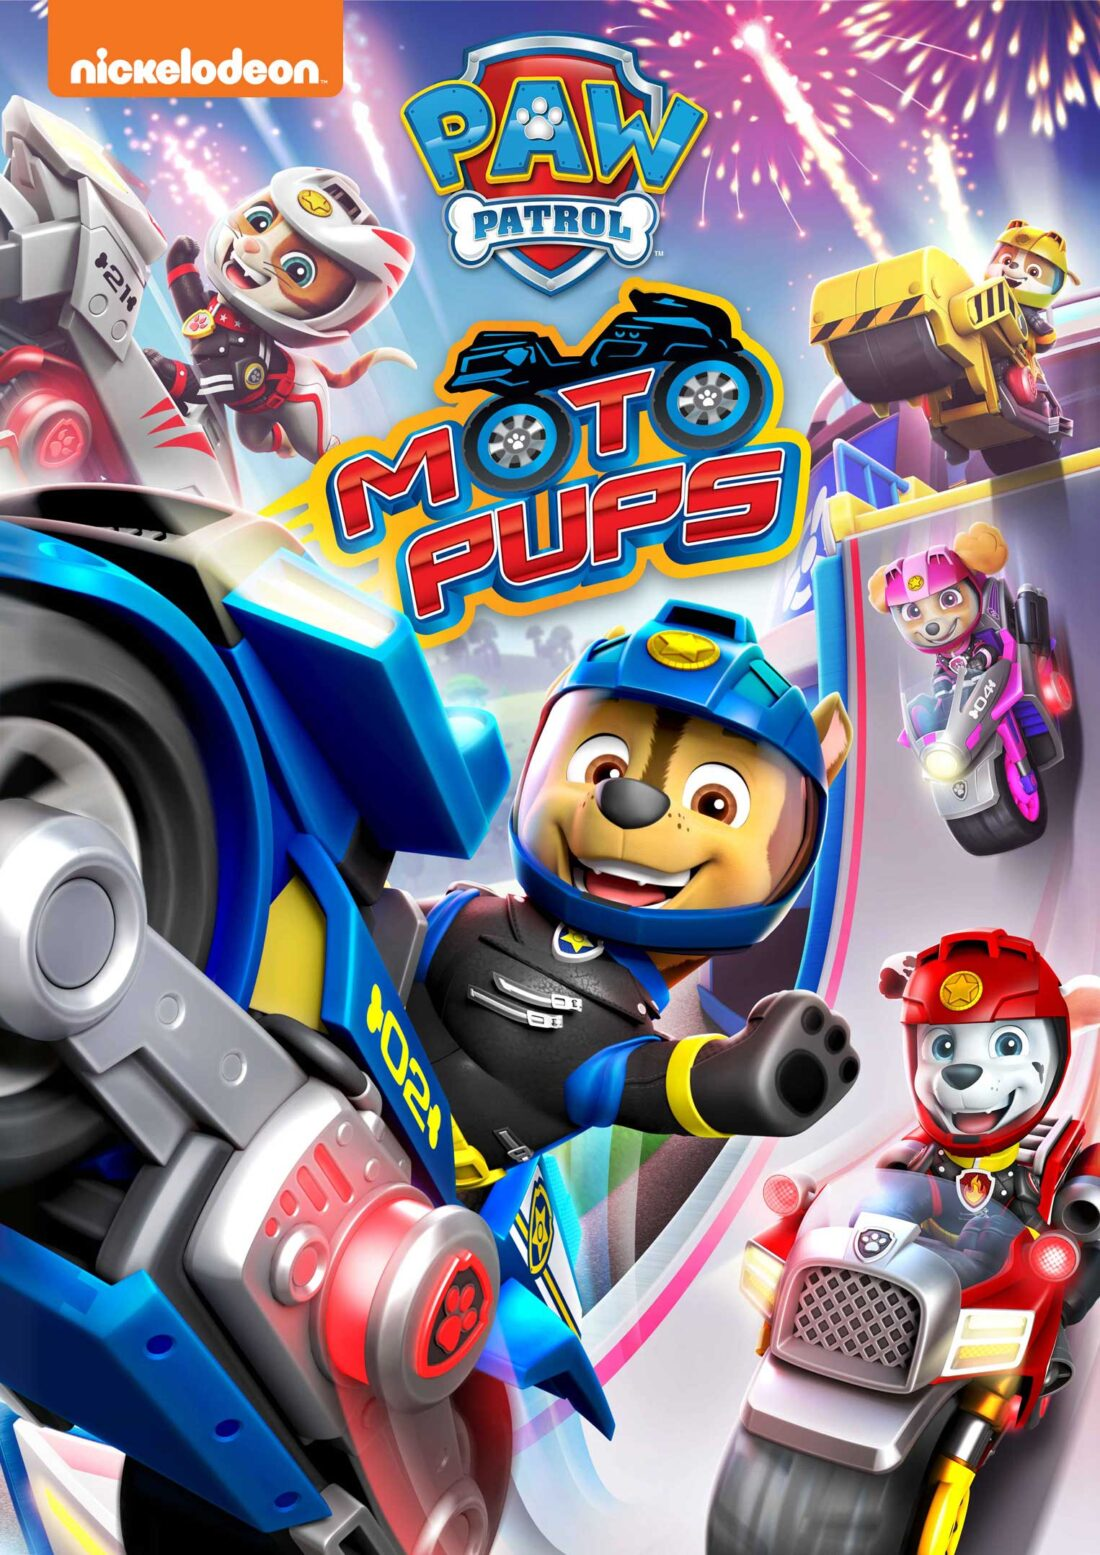 Get ready for a wild ride as the PAW Patrol welcomes a new feline friend, in their newest film PAW Patrol: Moto Pups! Available on June 1, 2021, this DVD features all-new high-speed bikes and high-tech gear plus a bonus episode.